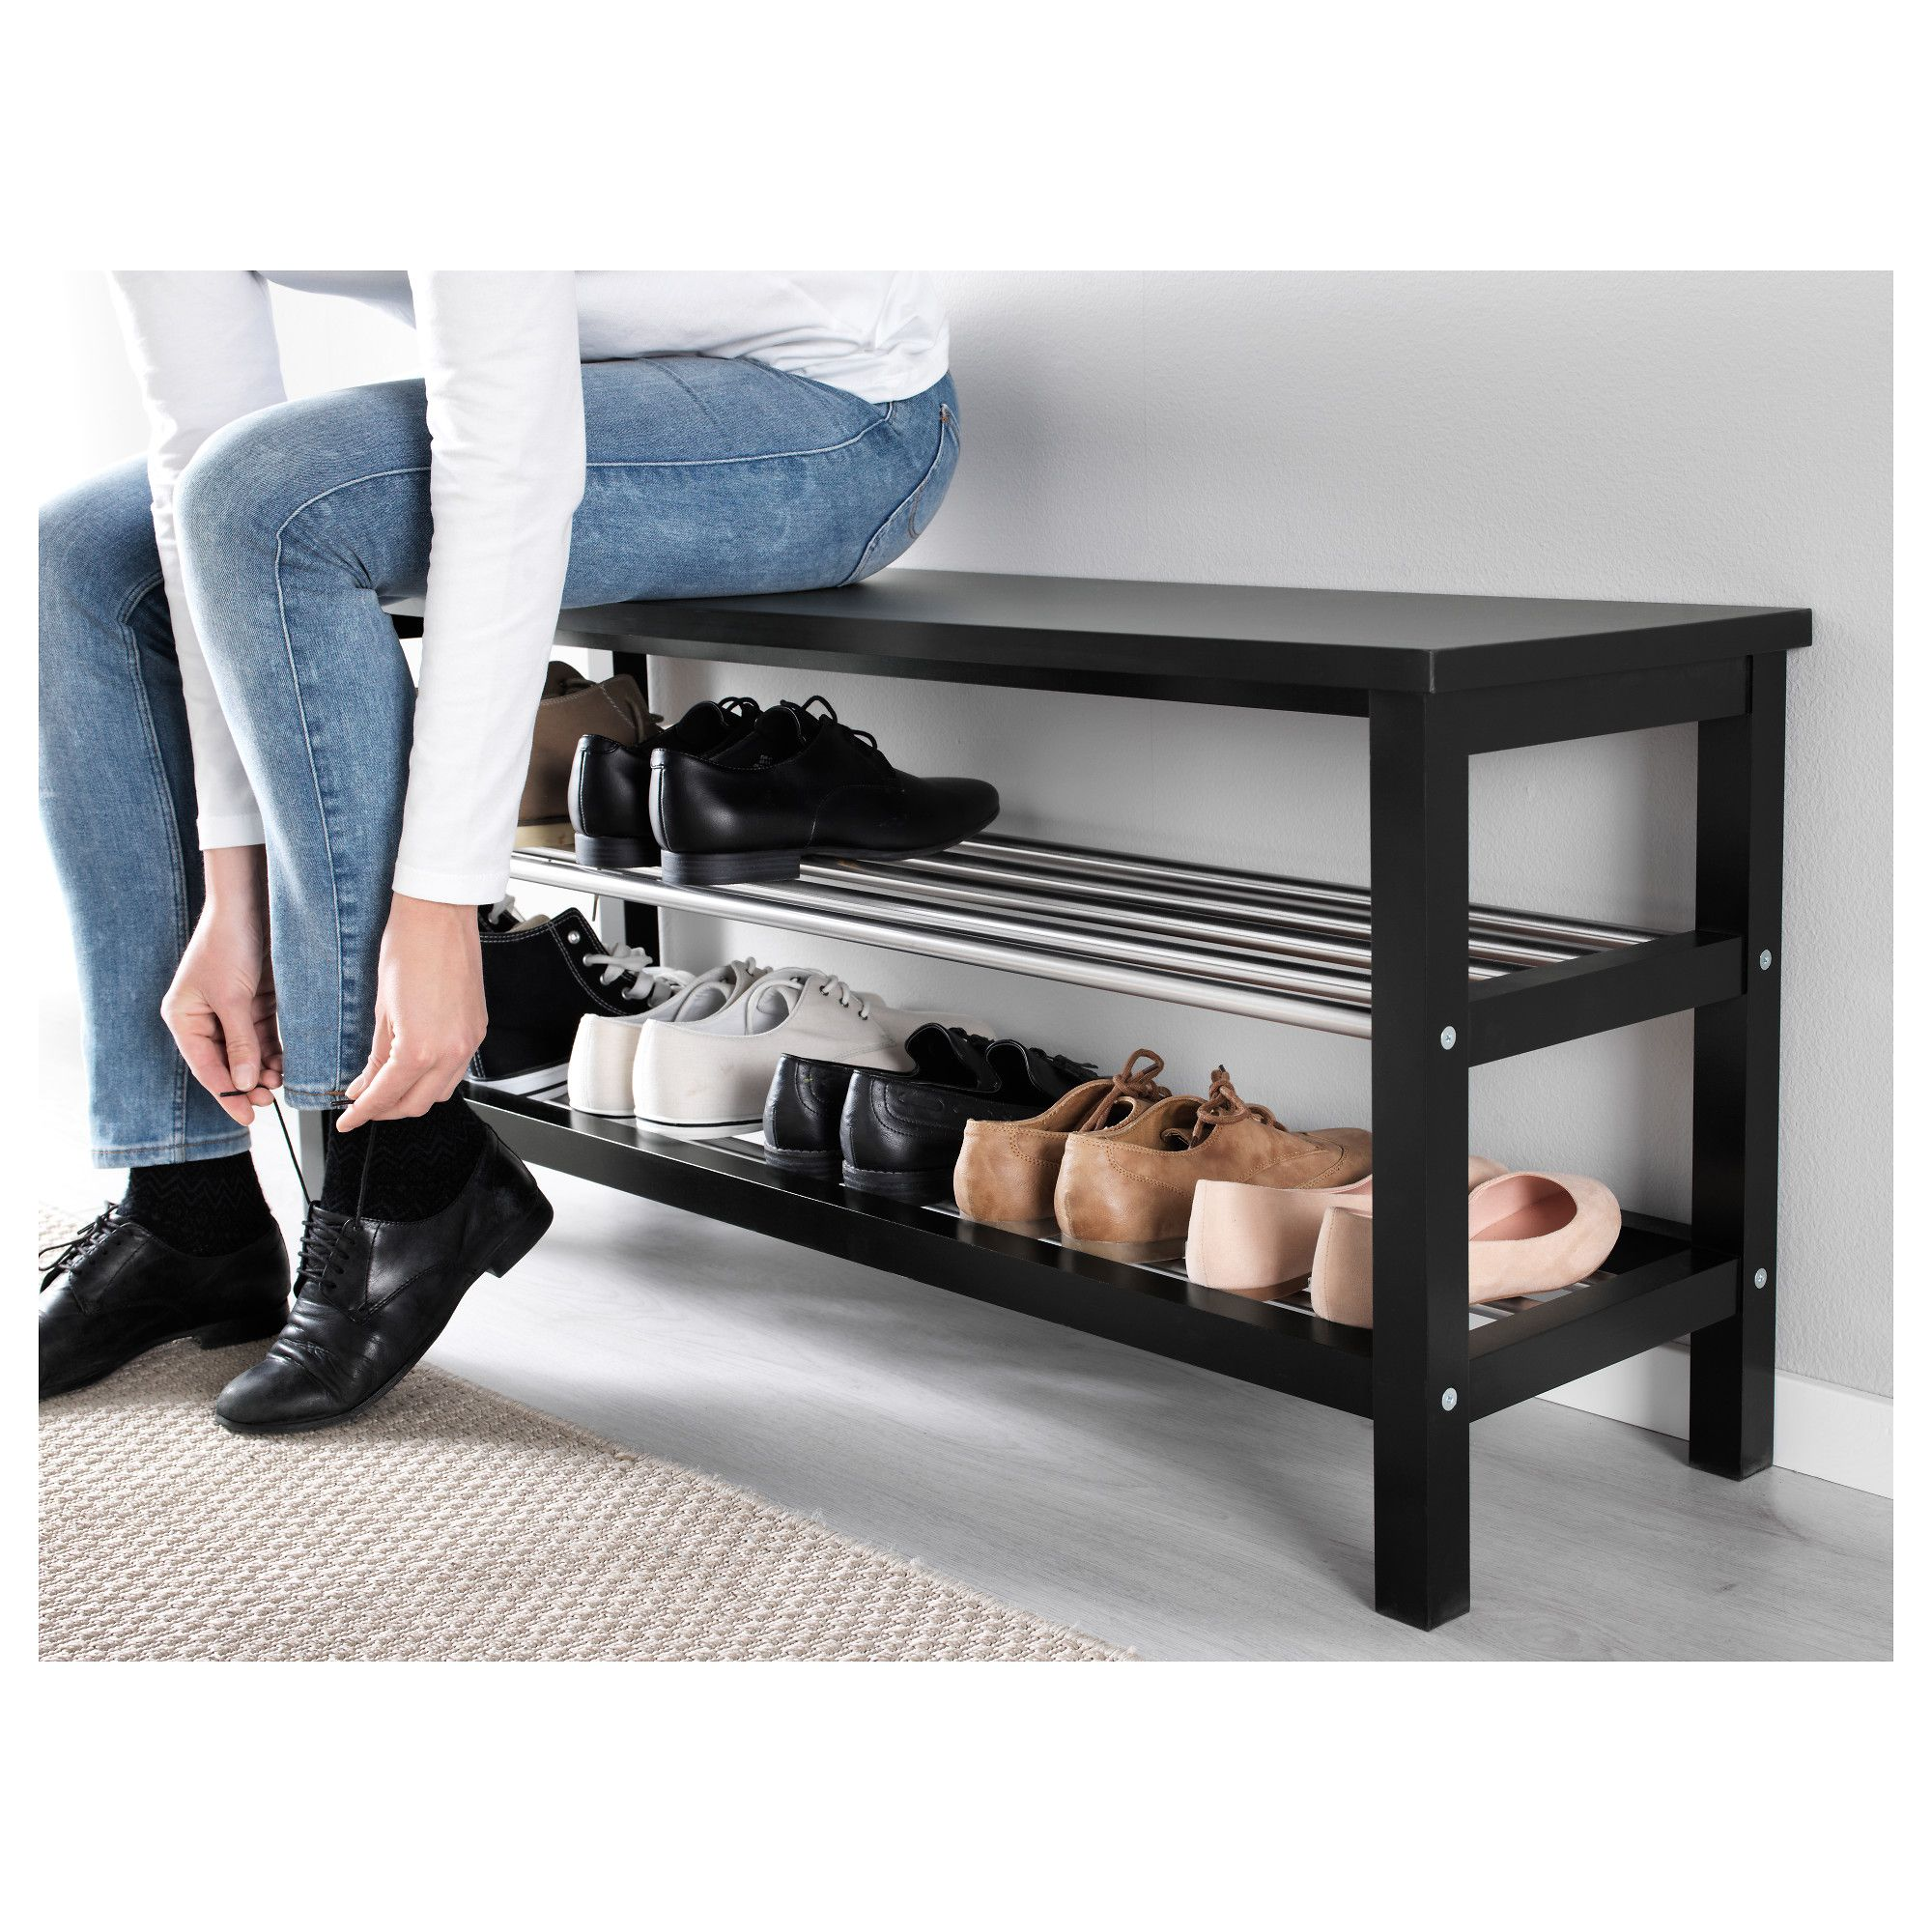 Ikea Tjusig Bench With Shoe Storage Black In 2019